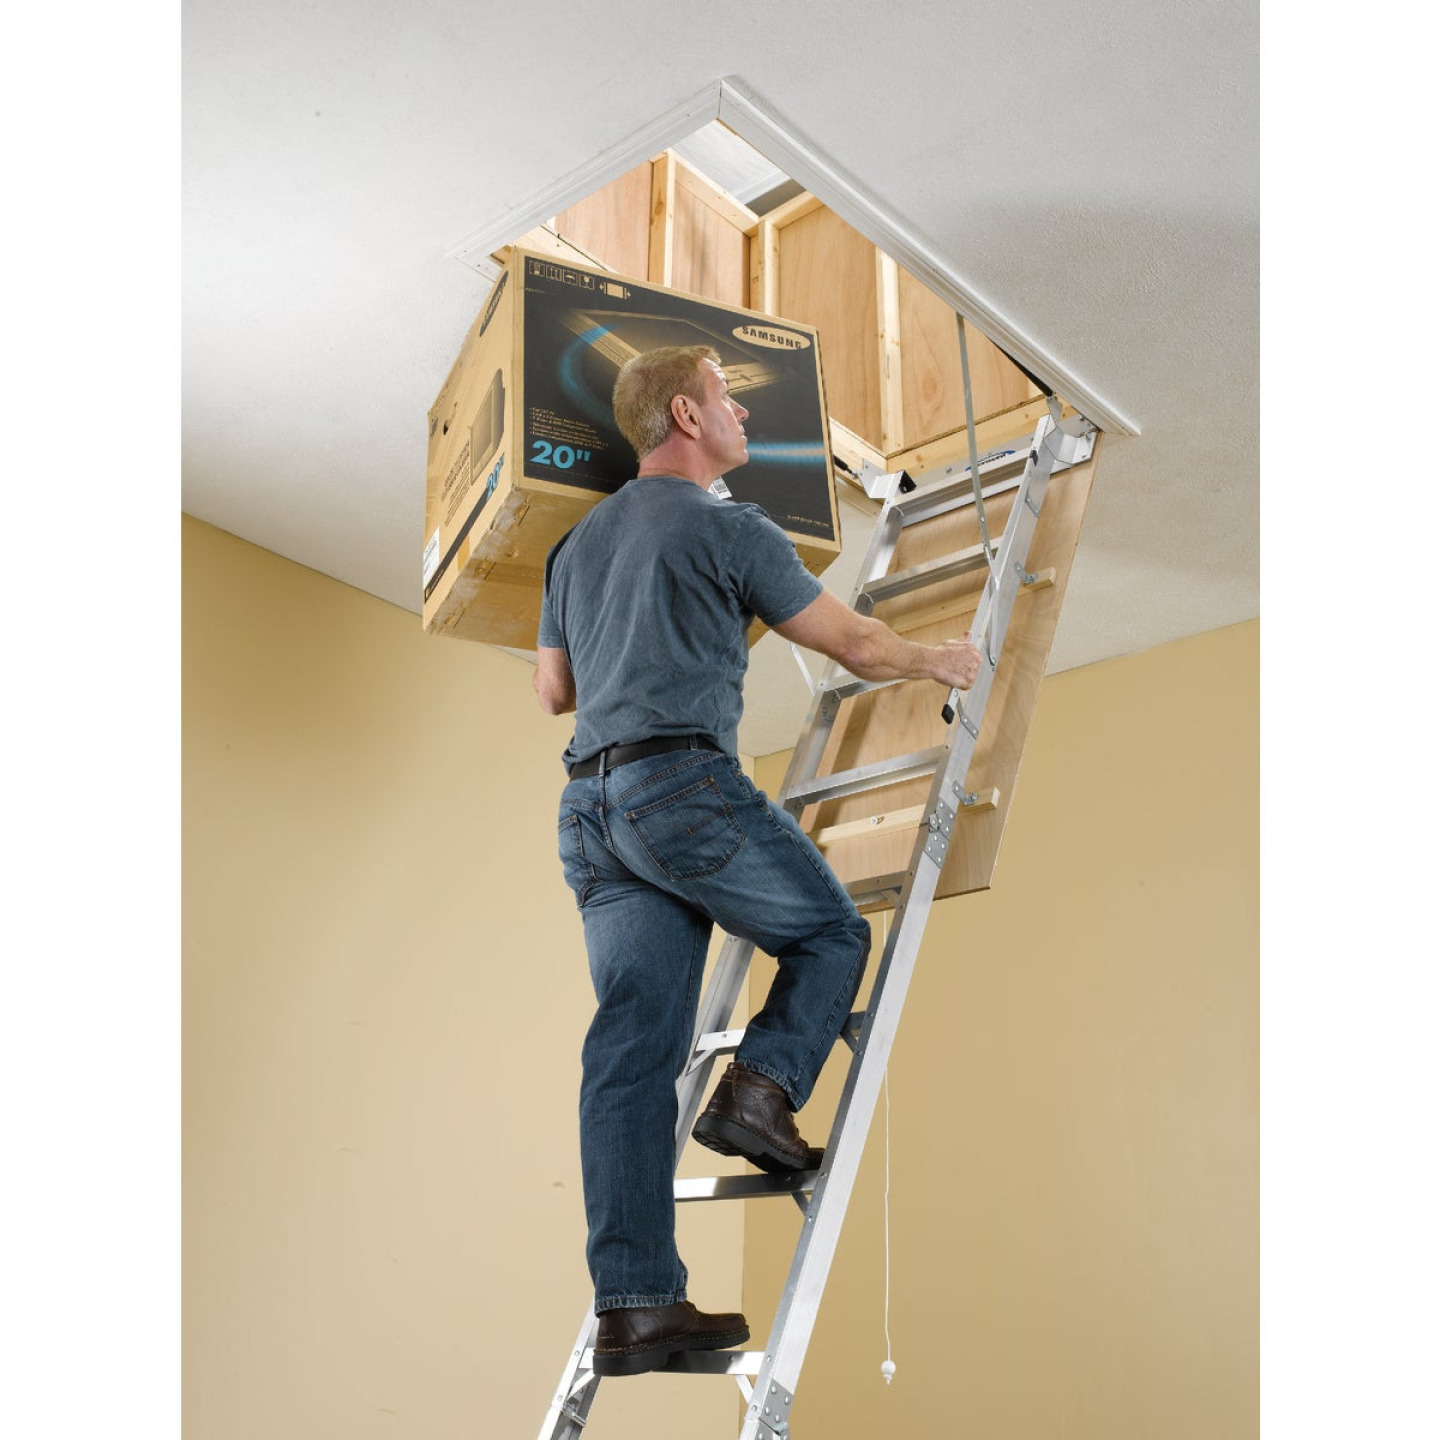 Werner Universal 8 Ft. to 10 Ft. 25 In. x 54 In. Aluminum Attic Stairs, 375 Lb. Load Image 2